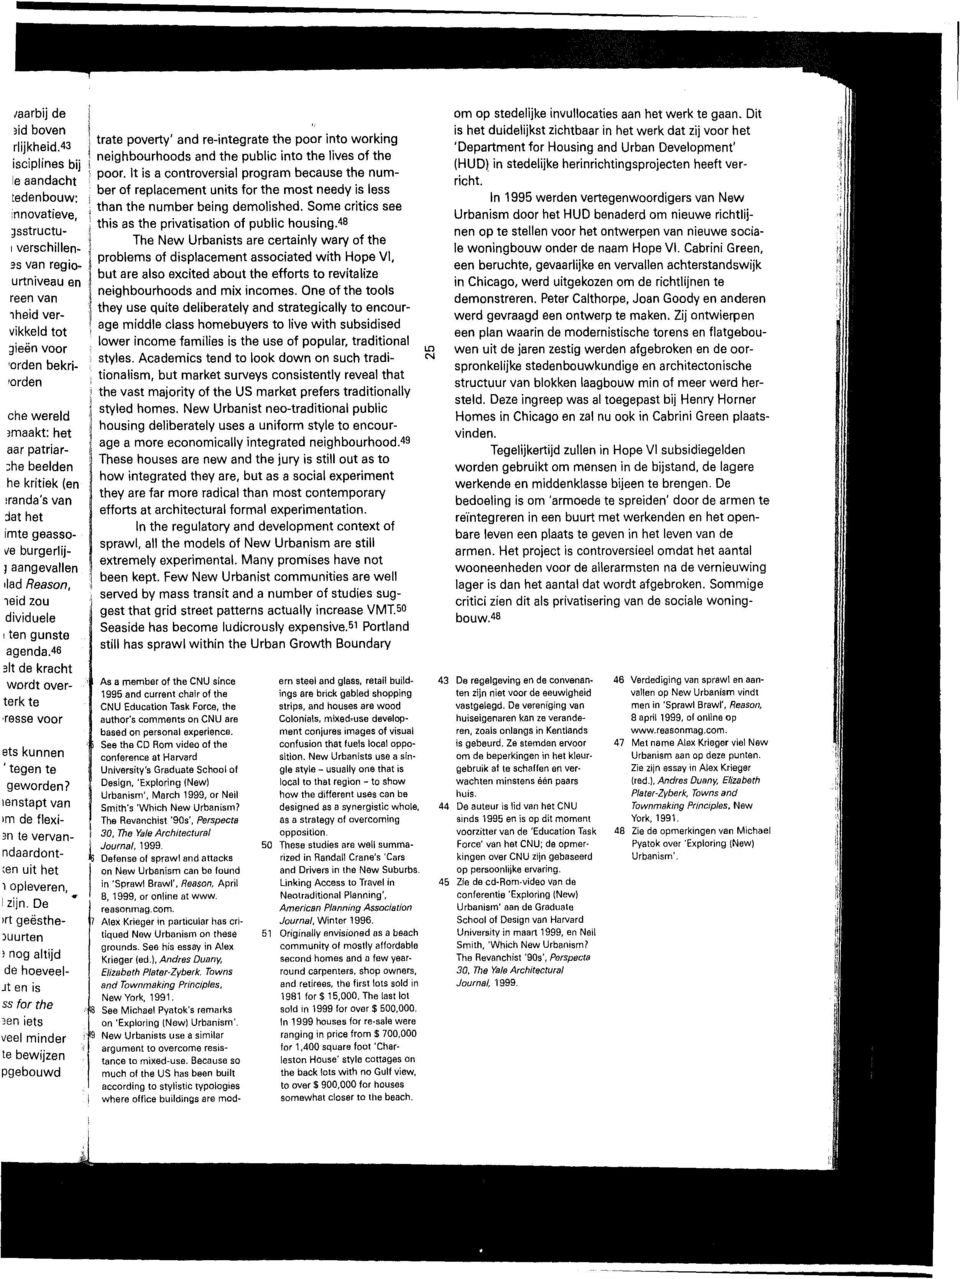 in 'Sprawl Brawl', Reason. April 8, 1999, or online at www. reasonmag. com. Alex Krieger in particuiar has critiqued ew Urbanism on these grounds. See his essay in Alex Krieger (ed.